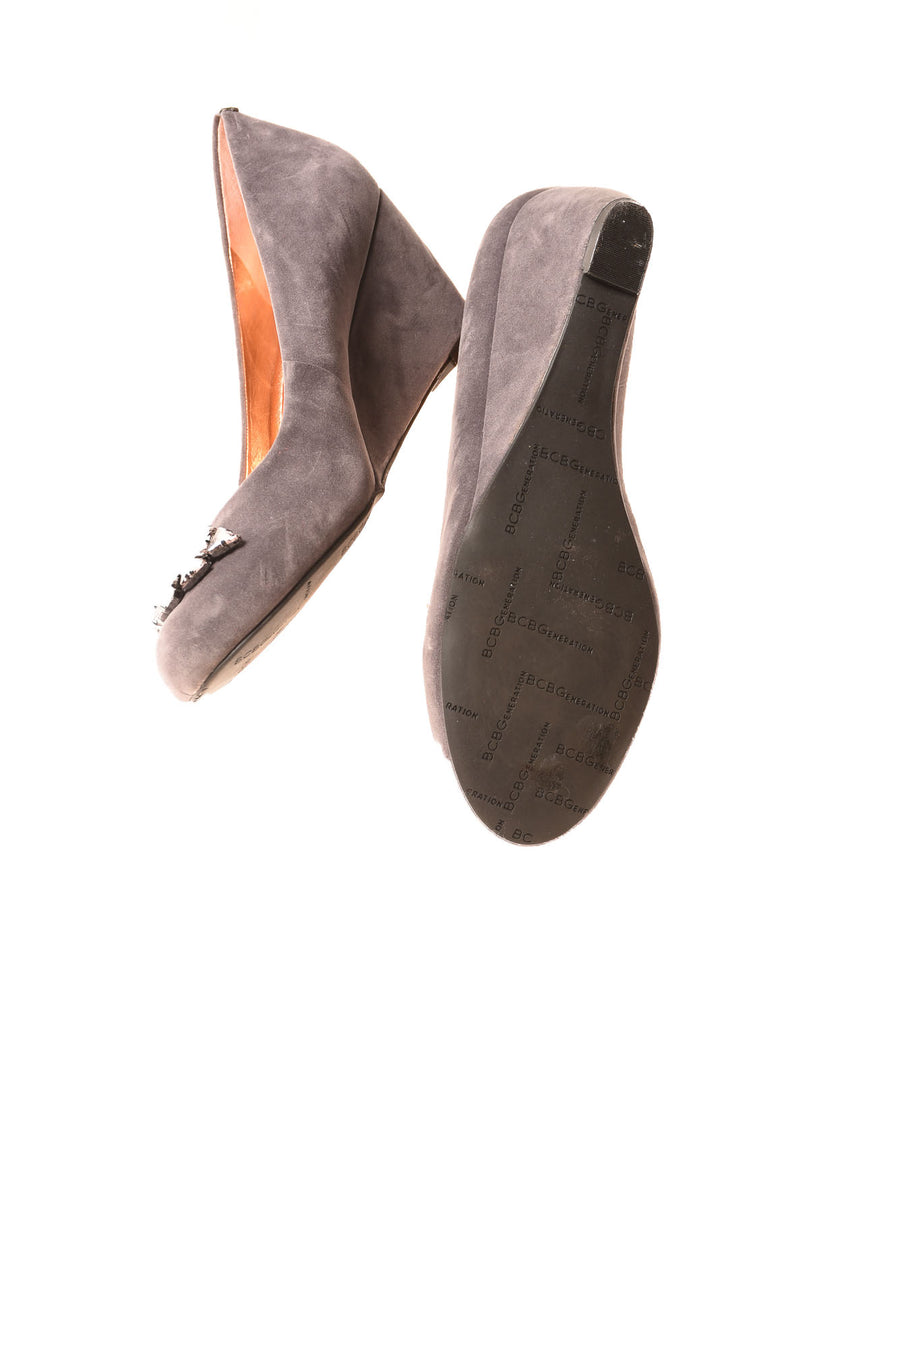 USED BCBG Women's Shoes 9 Gray